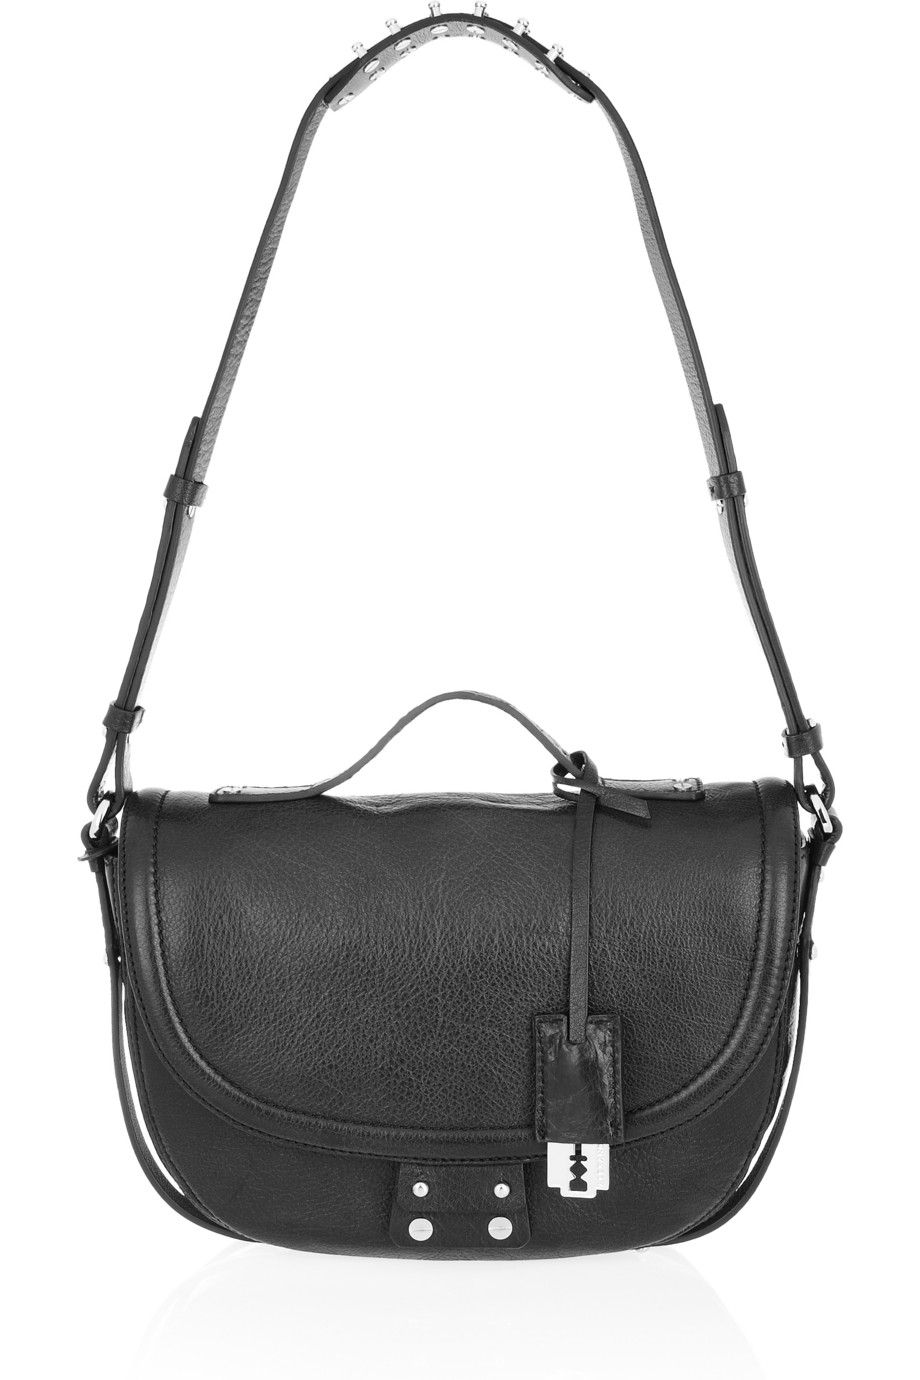 a4f54a85ea mcq alexander mcqueen clerkenwell leather shoulder bag